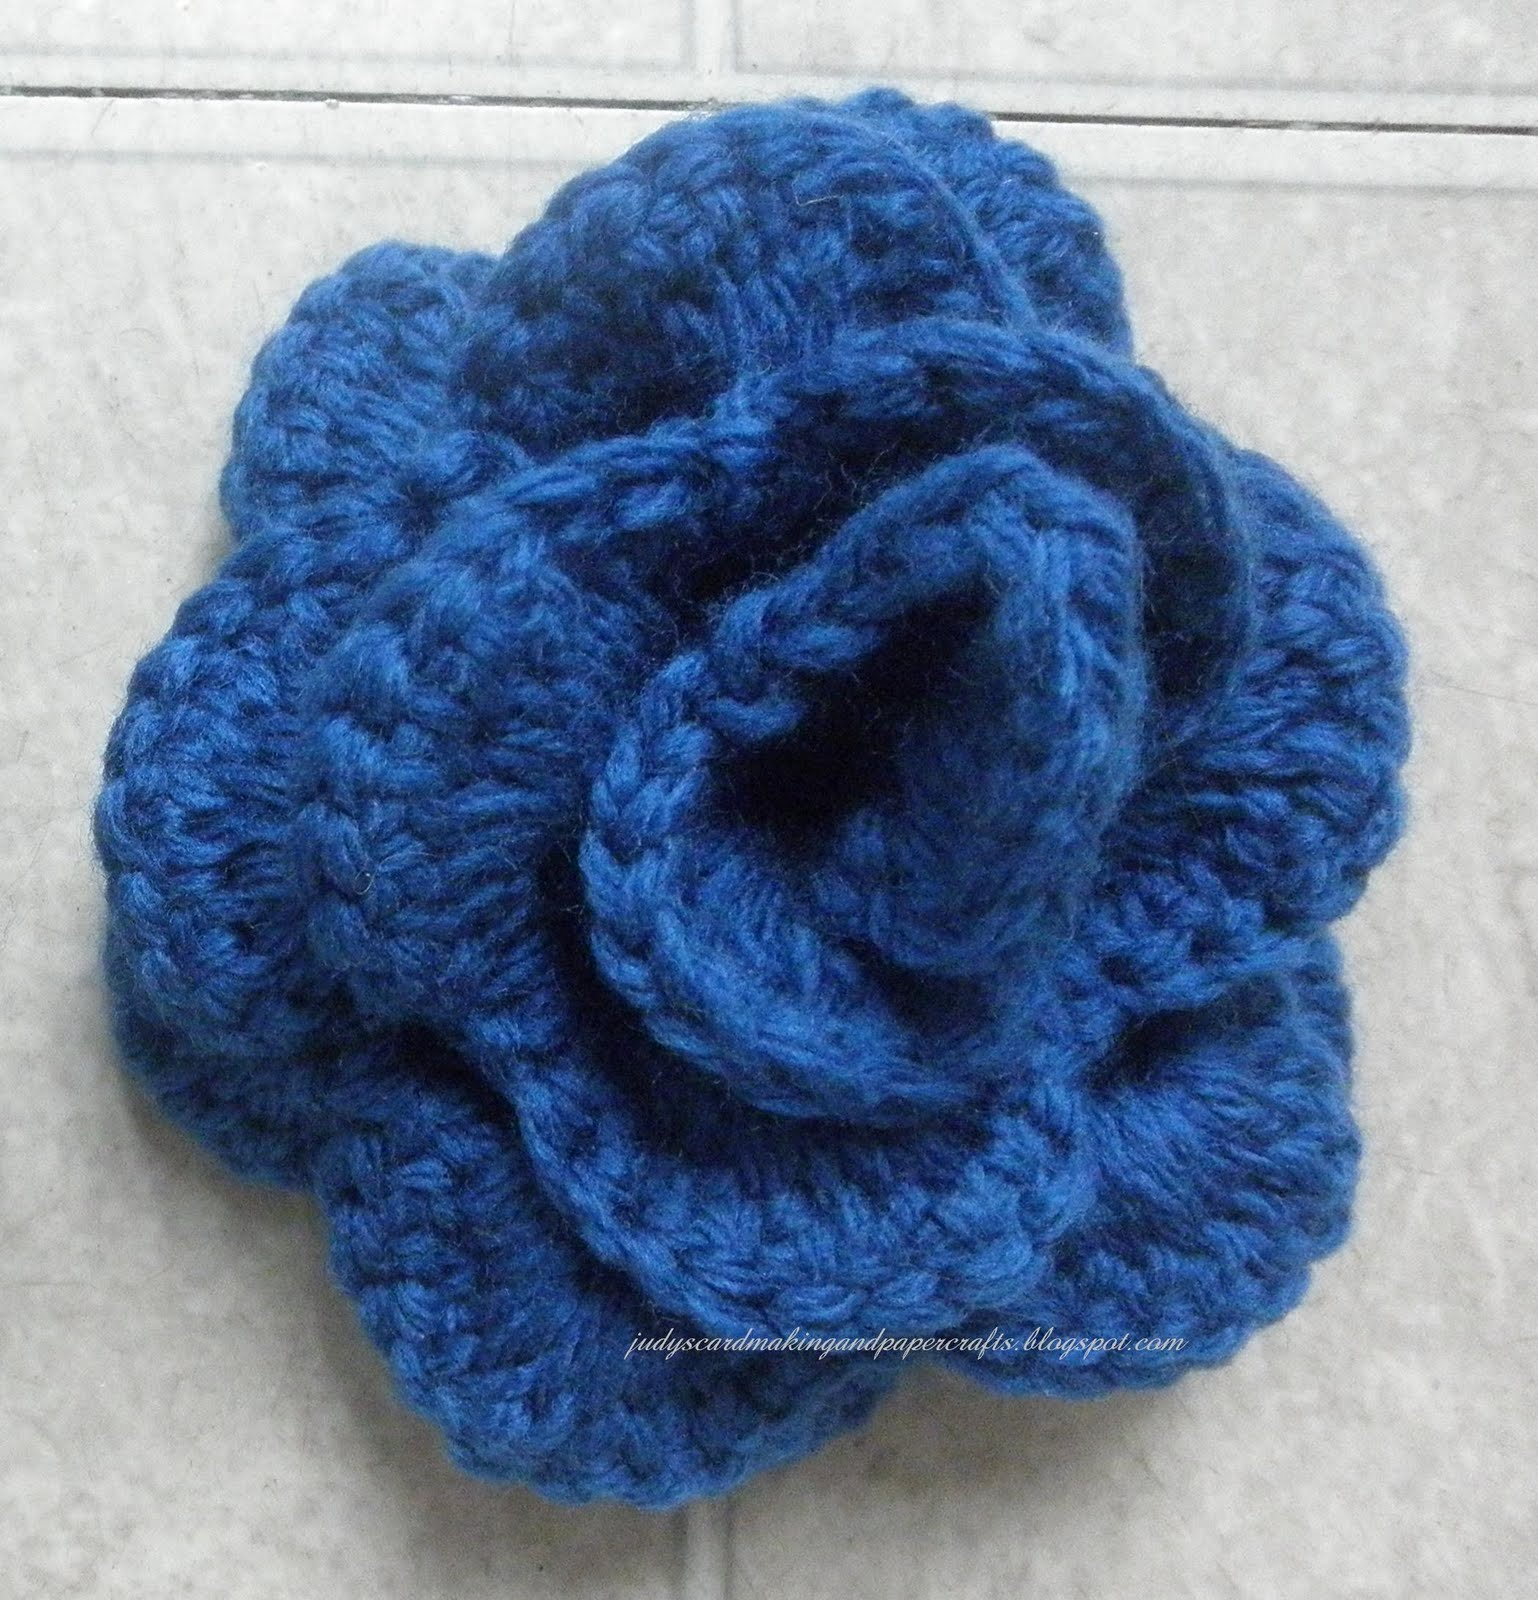 Site Crochet : crochet rose pattern this website is my favorite crochet site